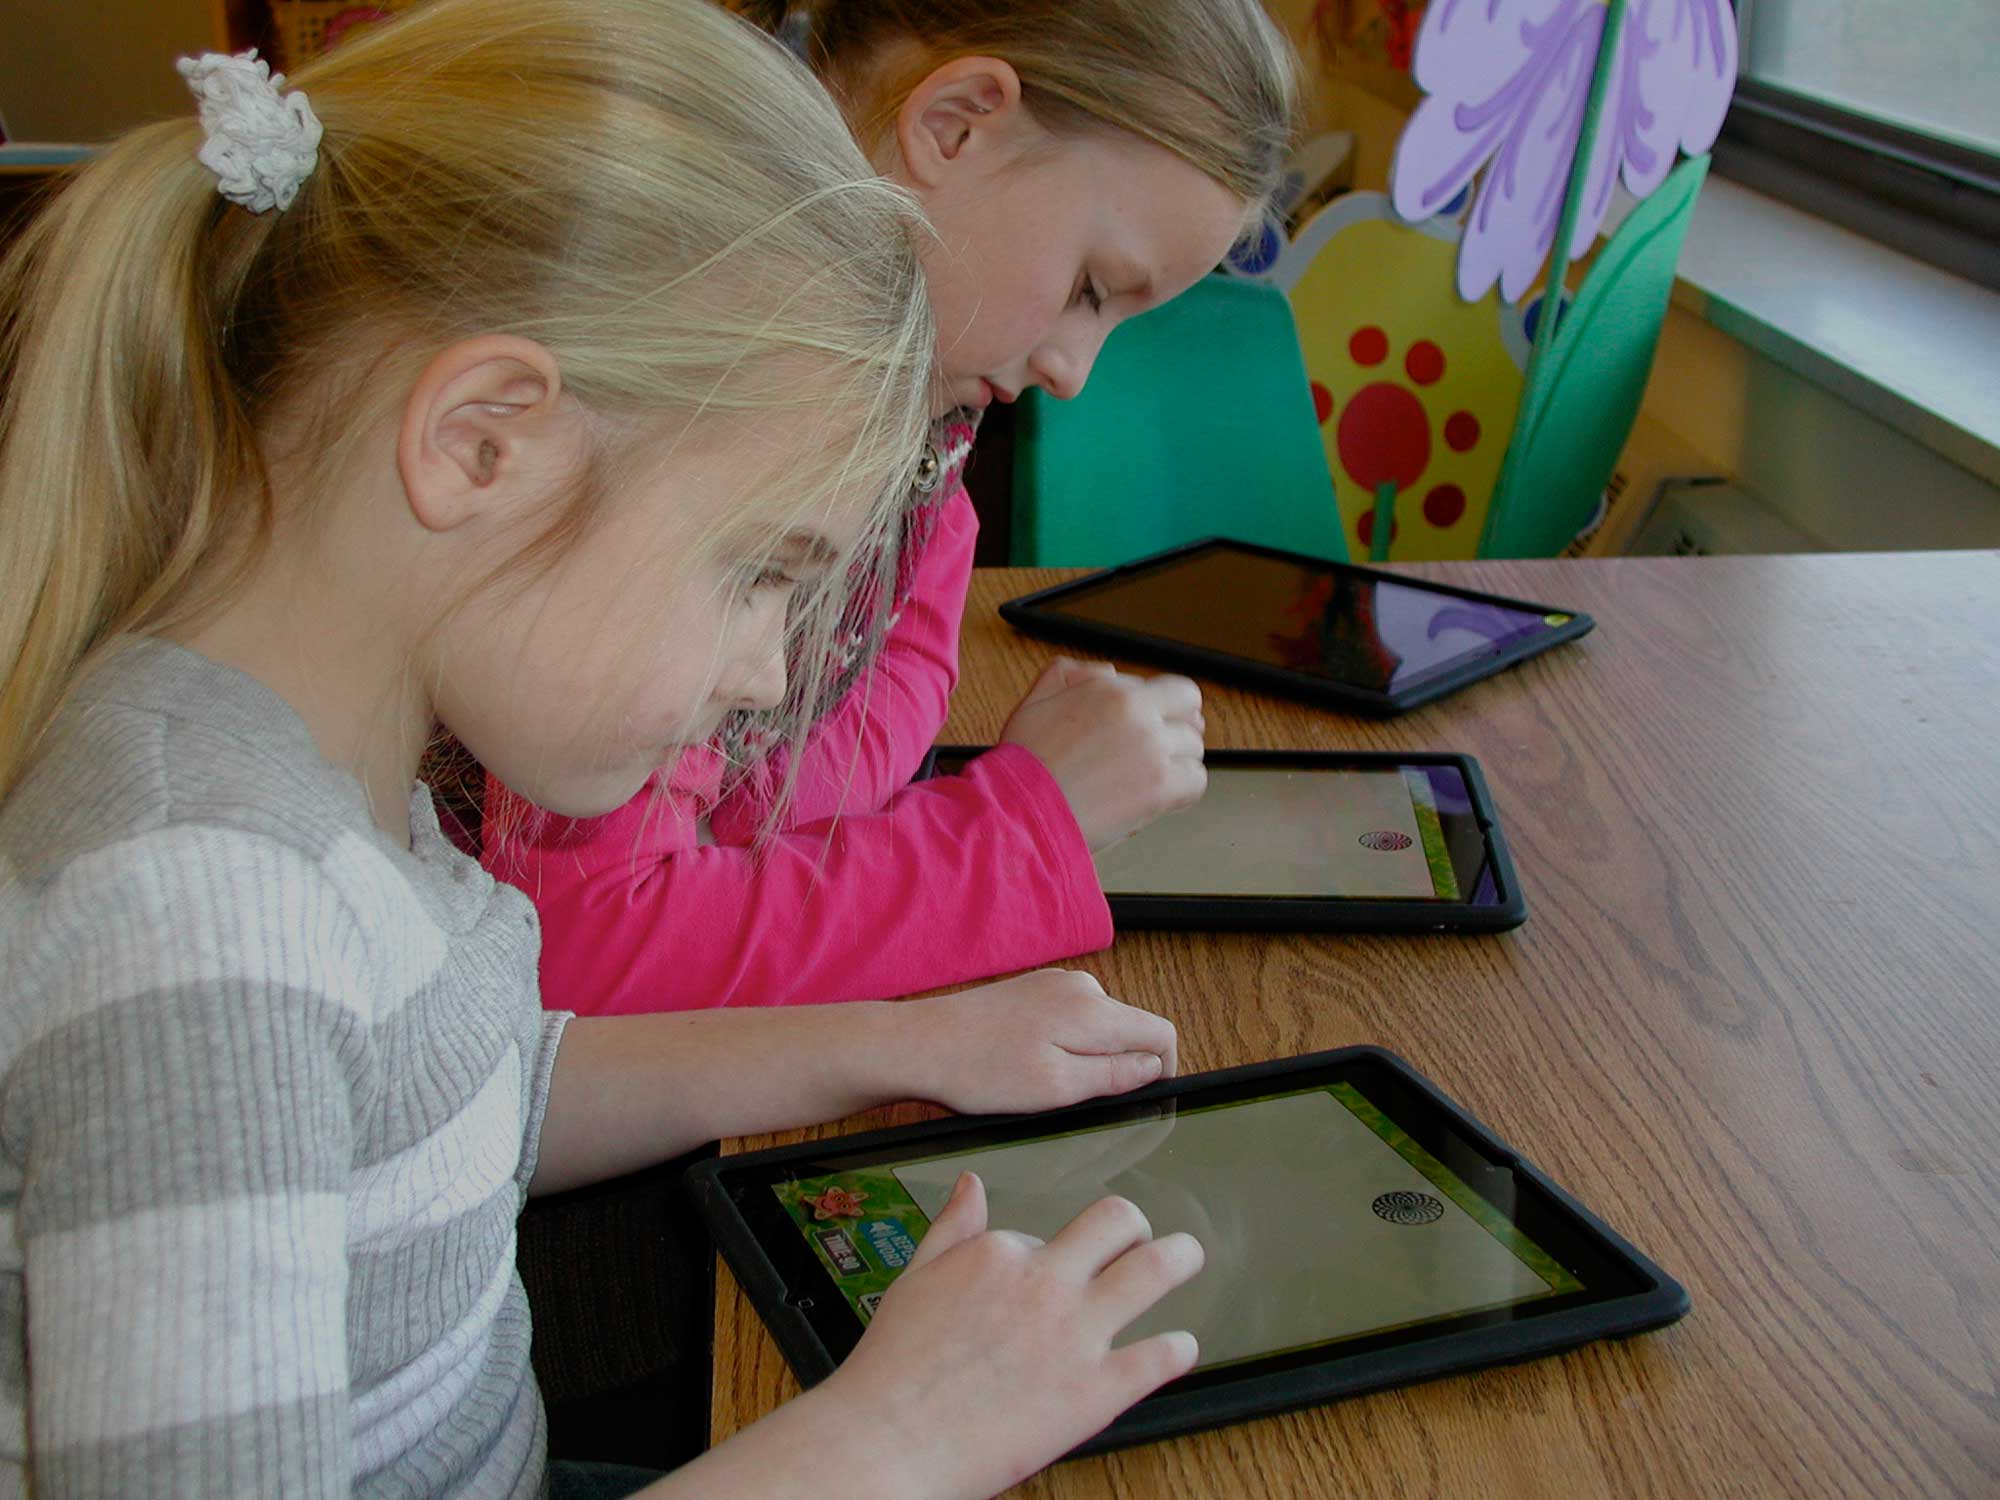 10 Facts Show Growth of iPads in the Classroom as Learning Tools